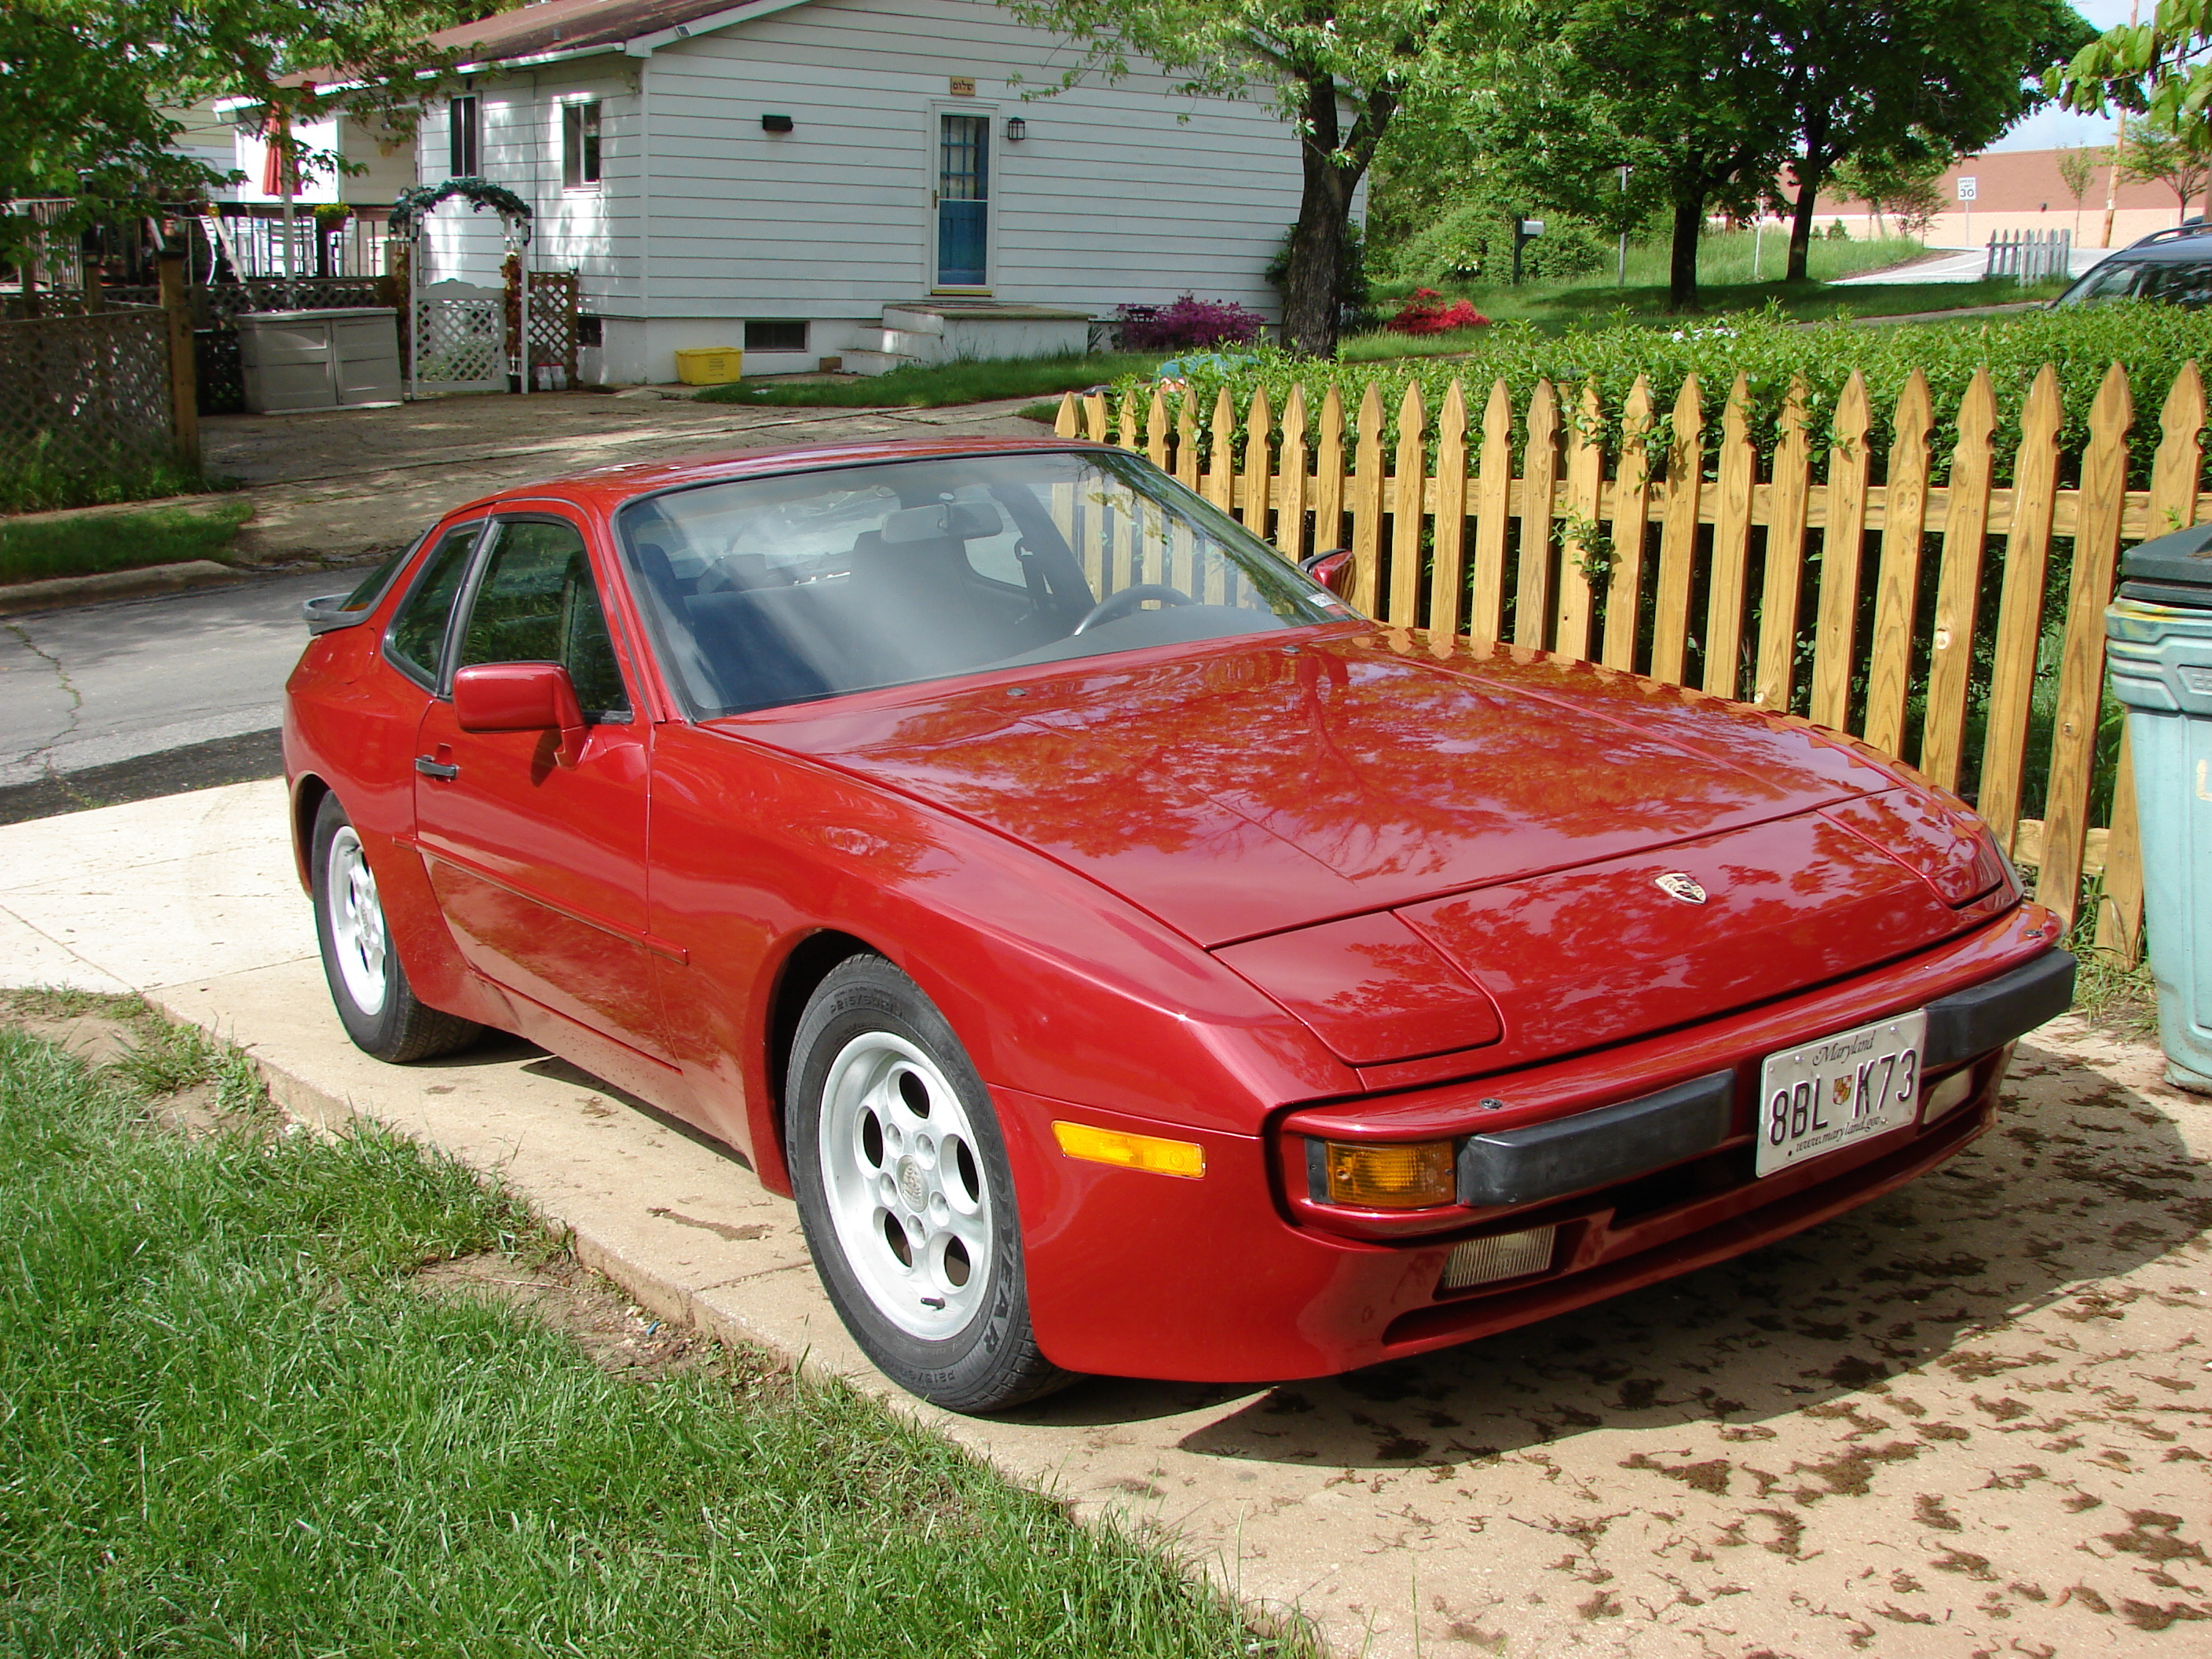 nsaneon 1985 porsche 944 specs, photos, modification info at cardomain